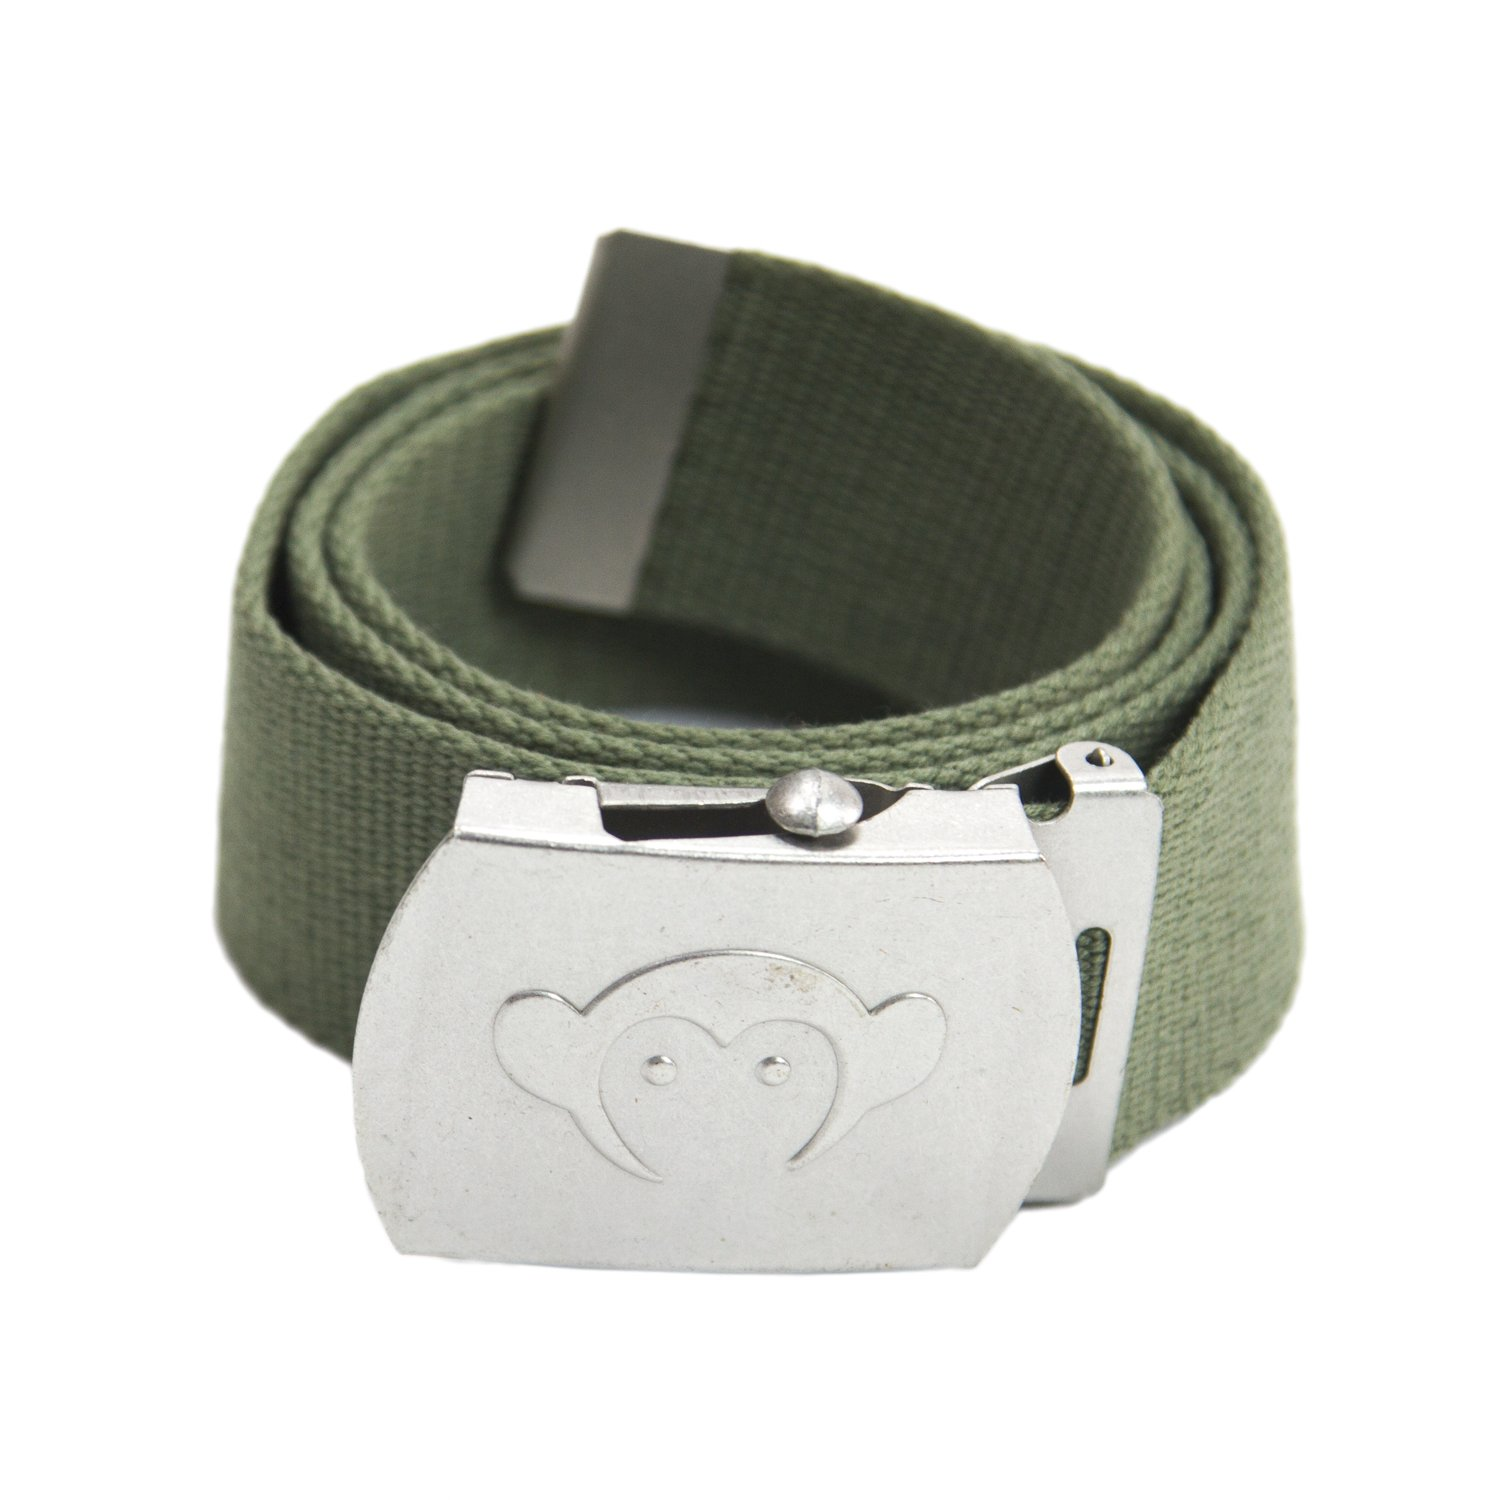 Appaman Little Boys' Canvas Belt, Olive, Large